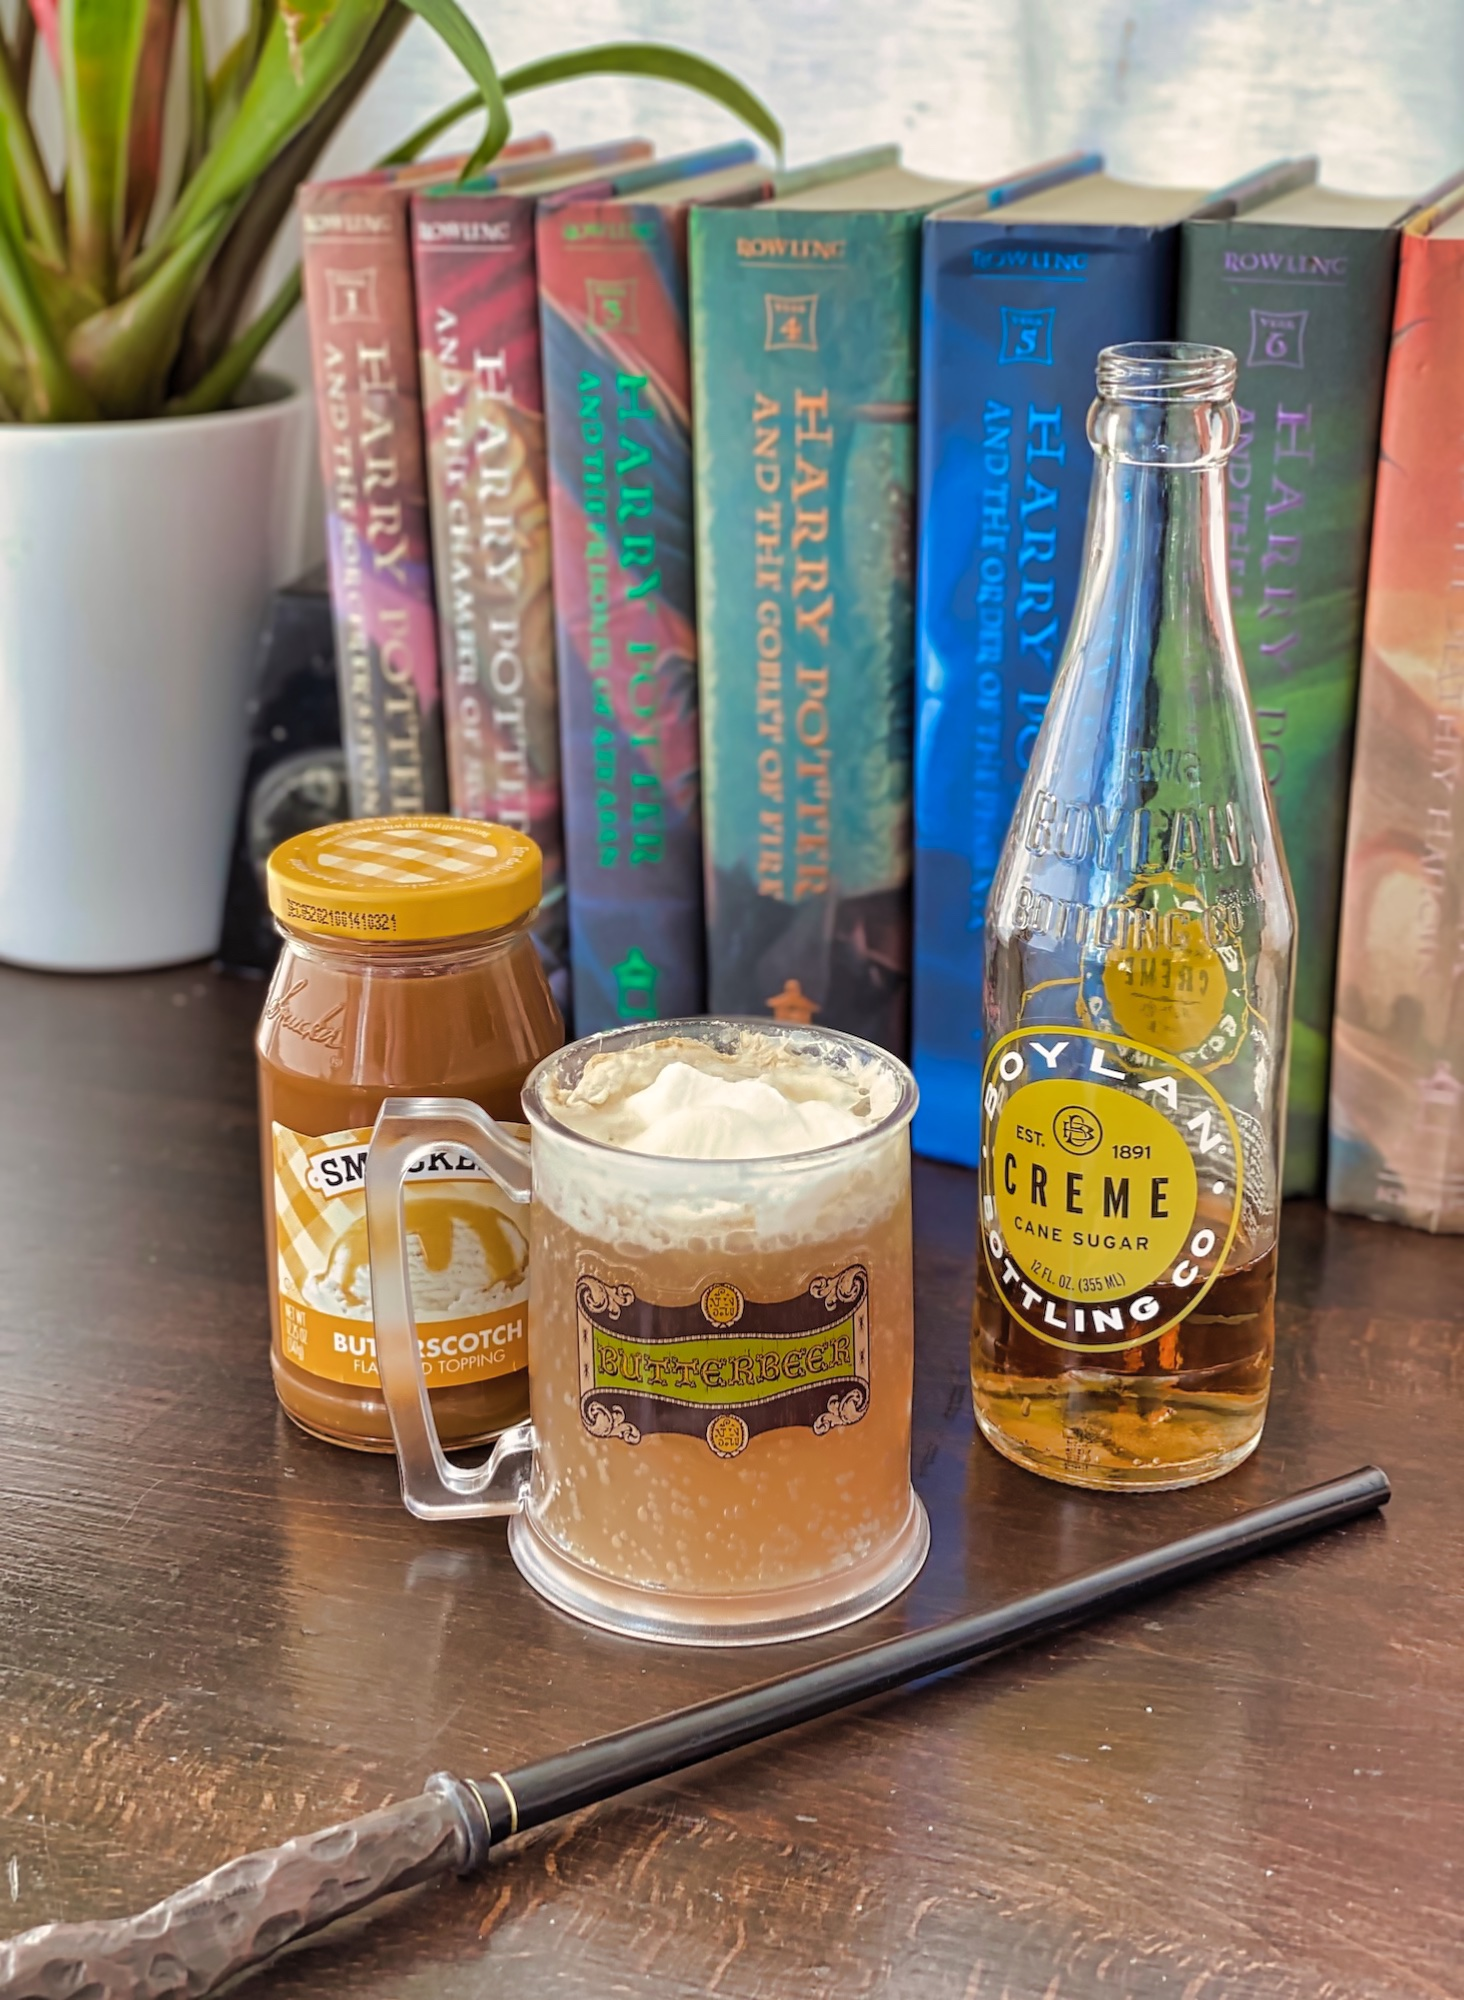 Butterbeer Recipe Ingredients and Wand